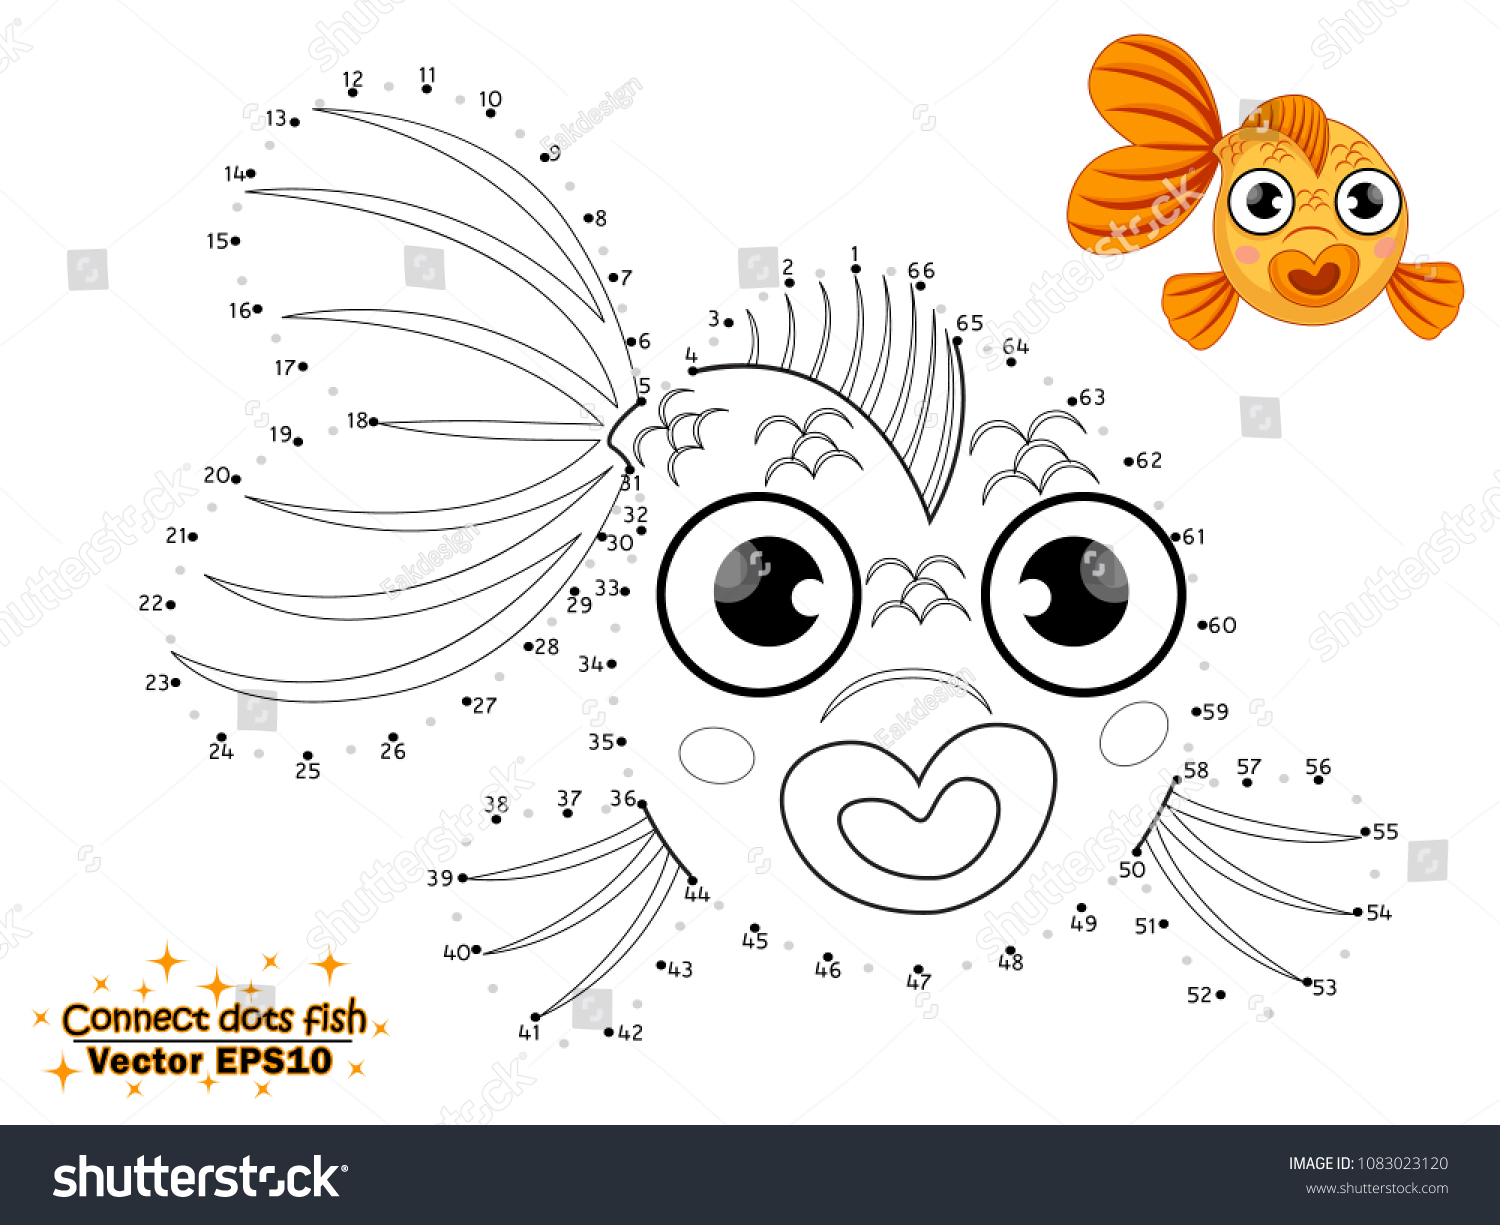 Connect the dots draw the cute cartoon fish and color educational game for kids